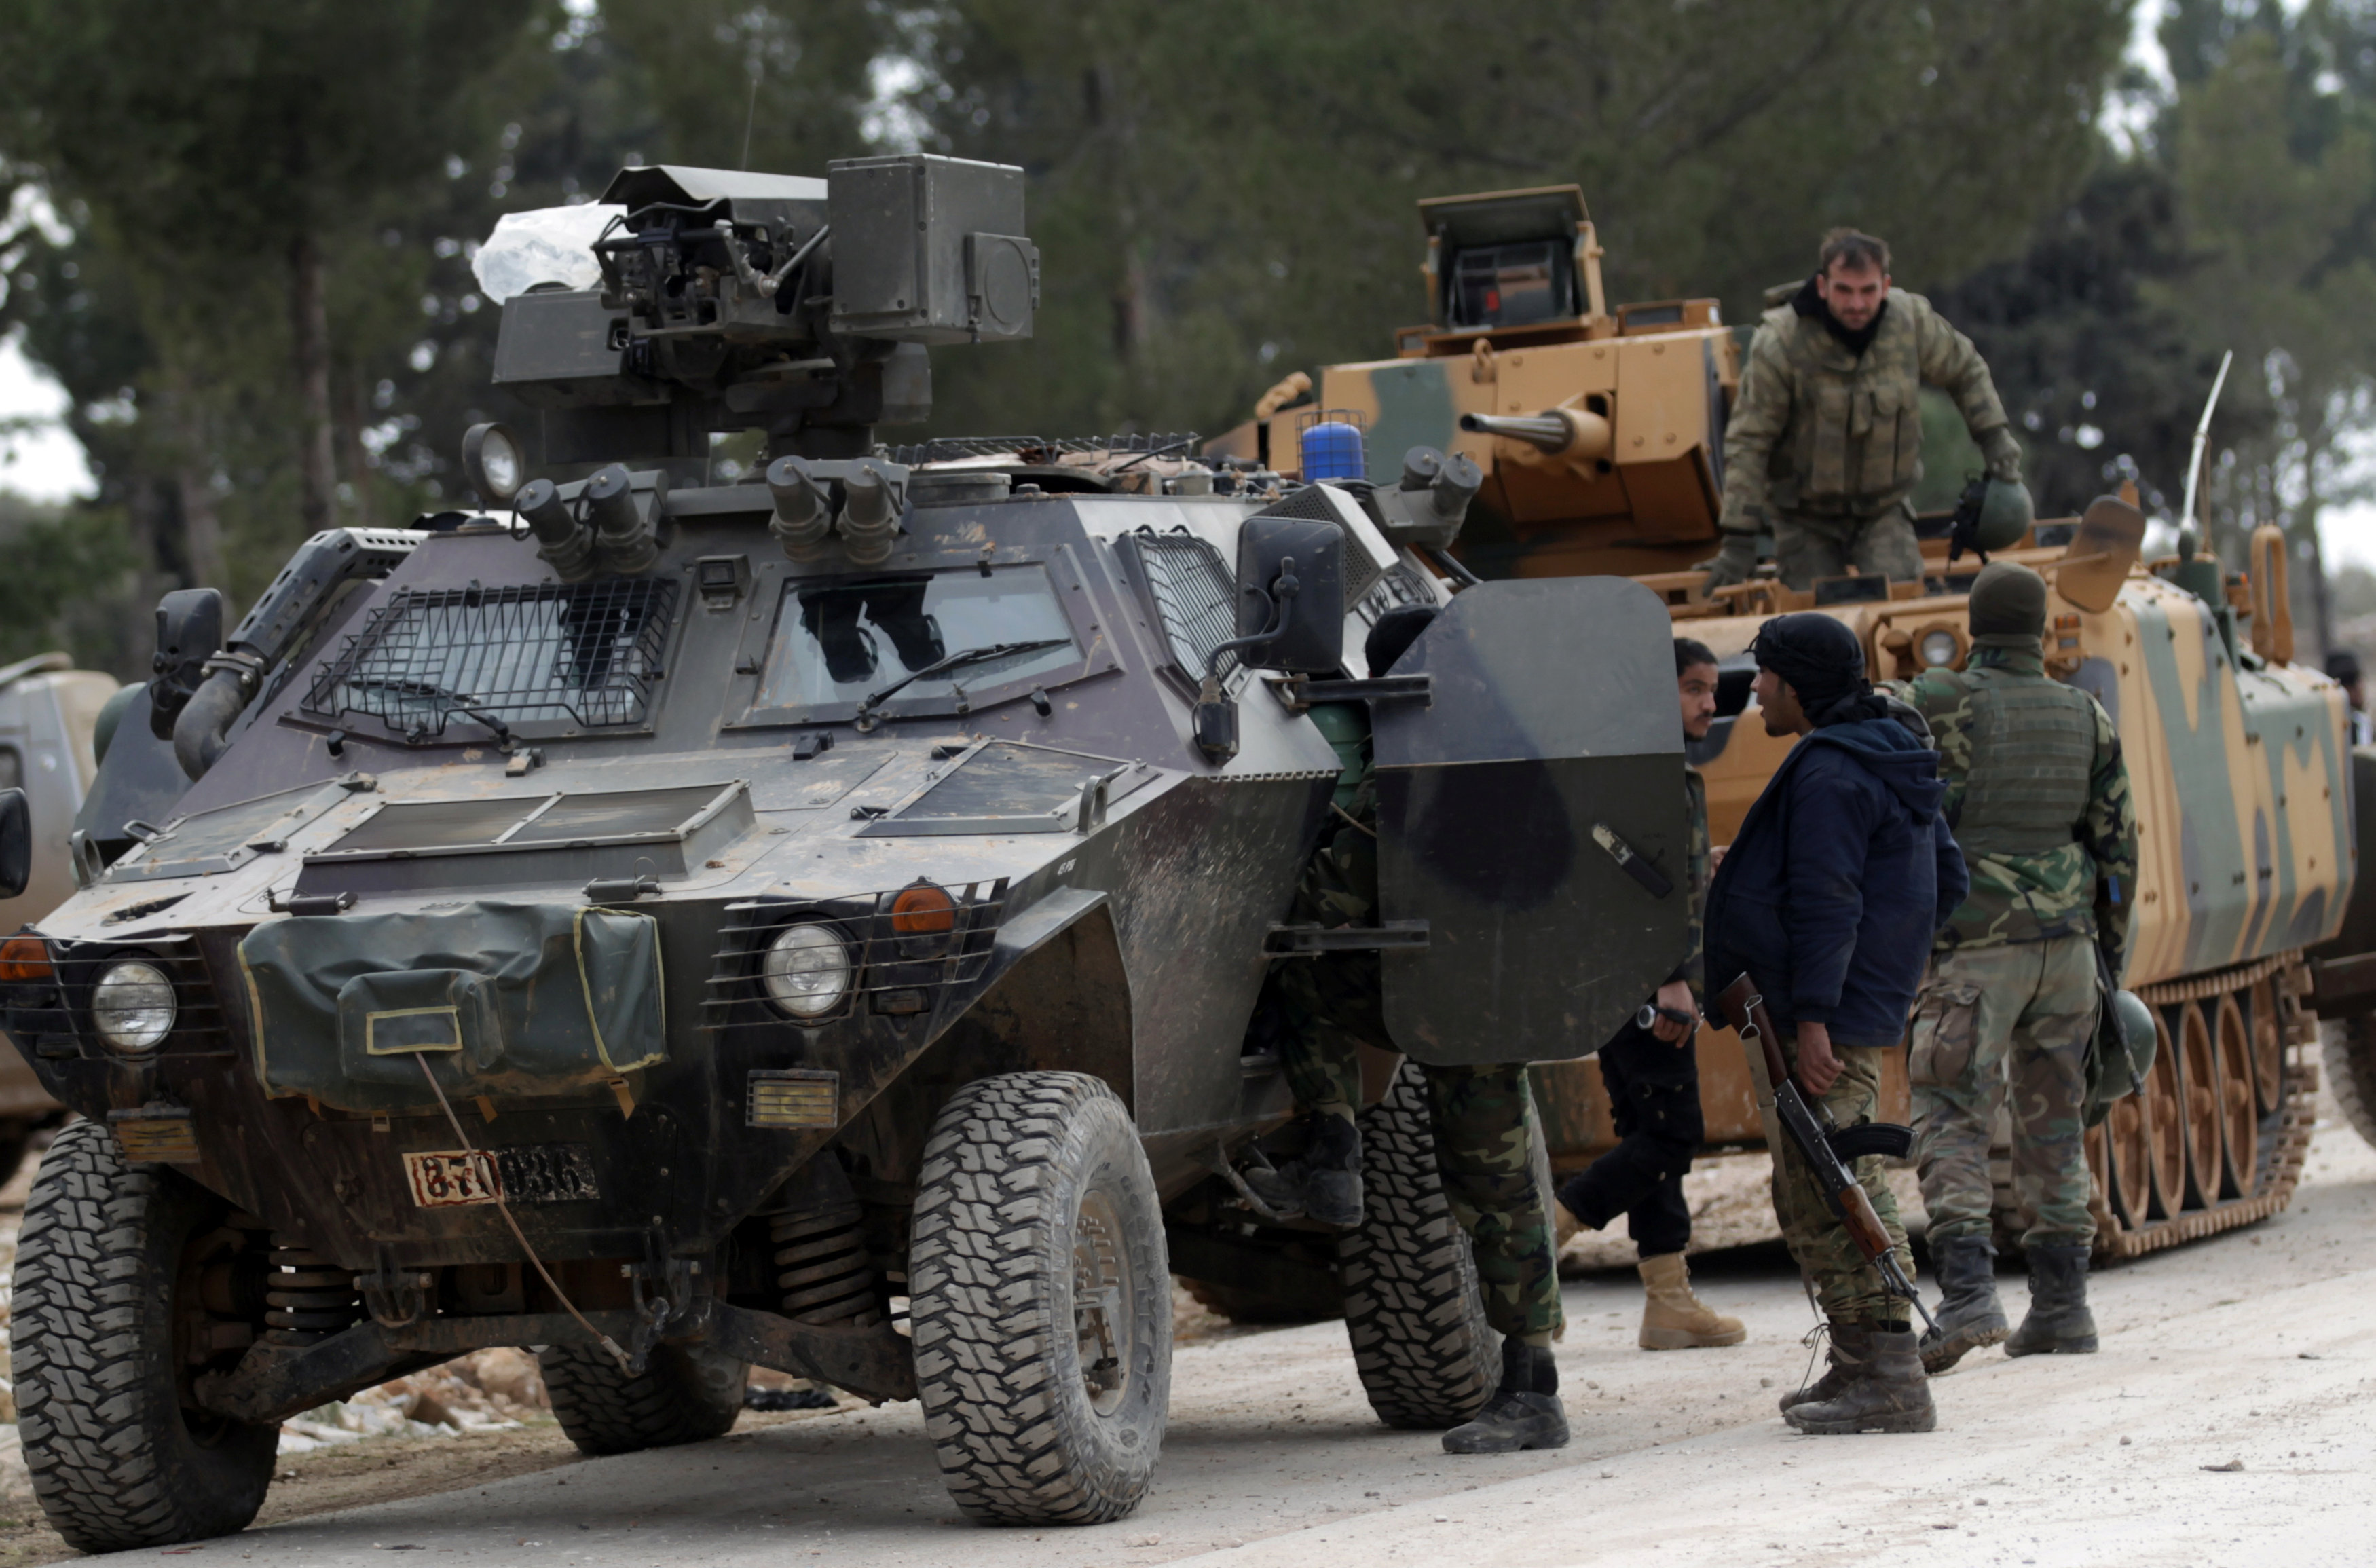 Turkish forces and members of the Free Syrian Army are seen at the al Baza'a village on the outskirts of al-Bab town in Syria